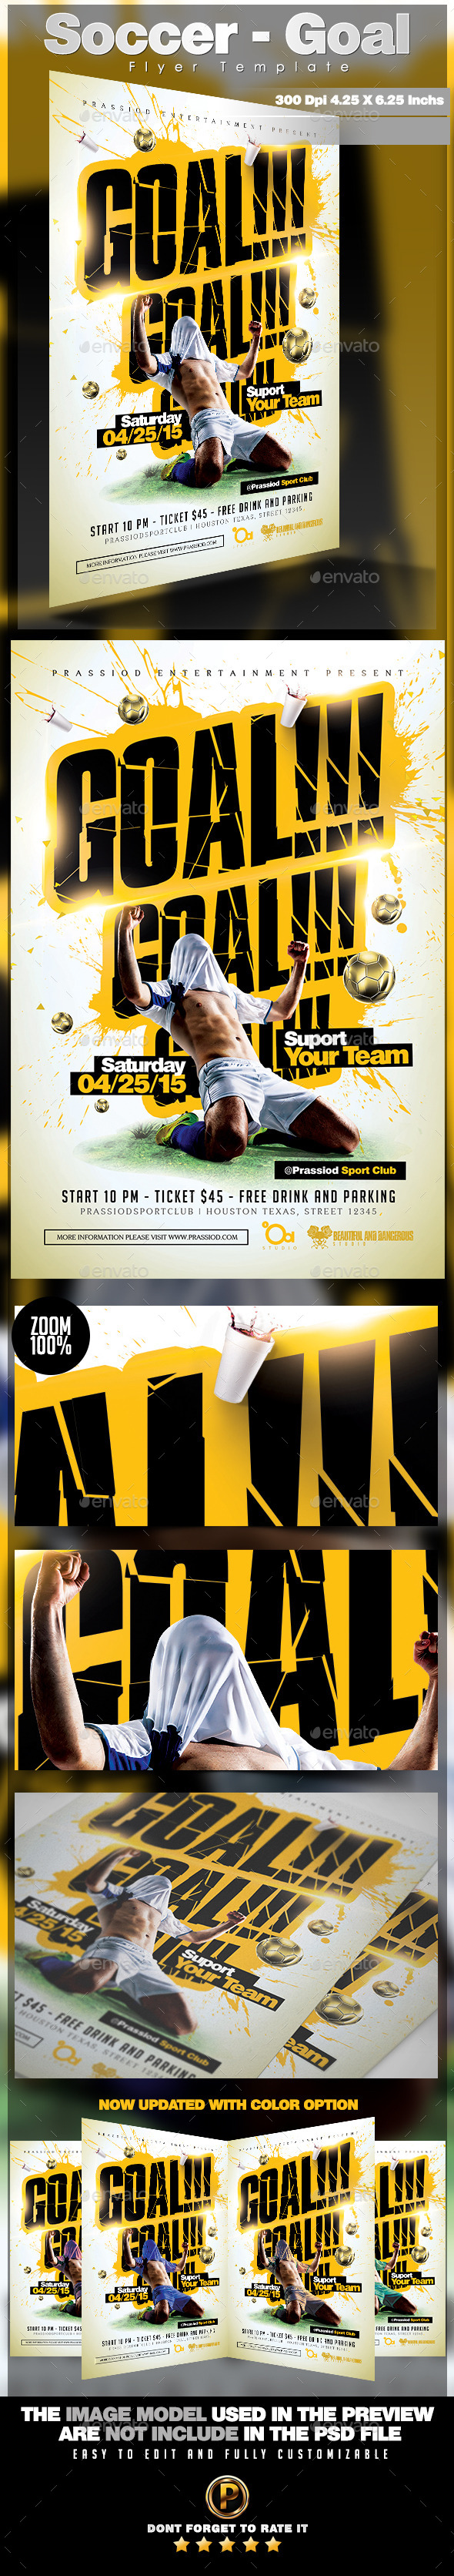 Soccer - Goal Flyer Template by prassiod | GraphicRiver